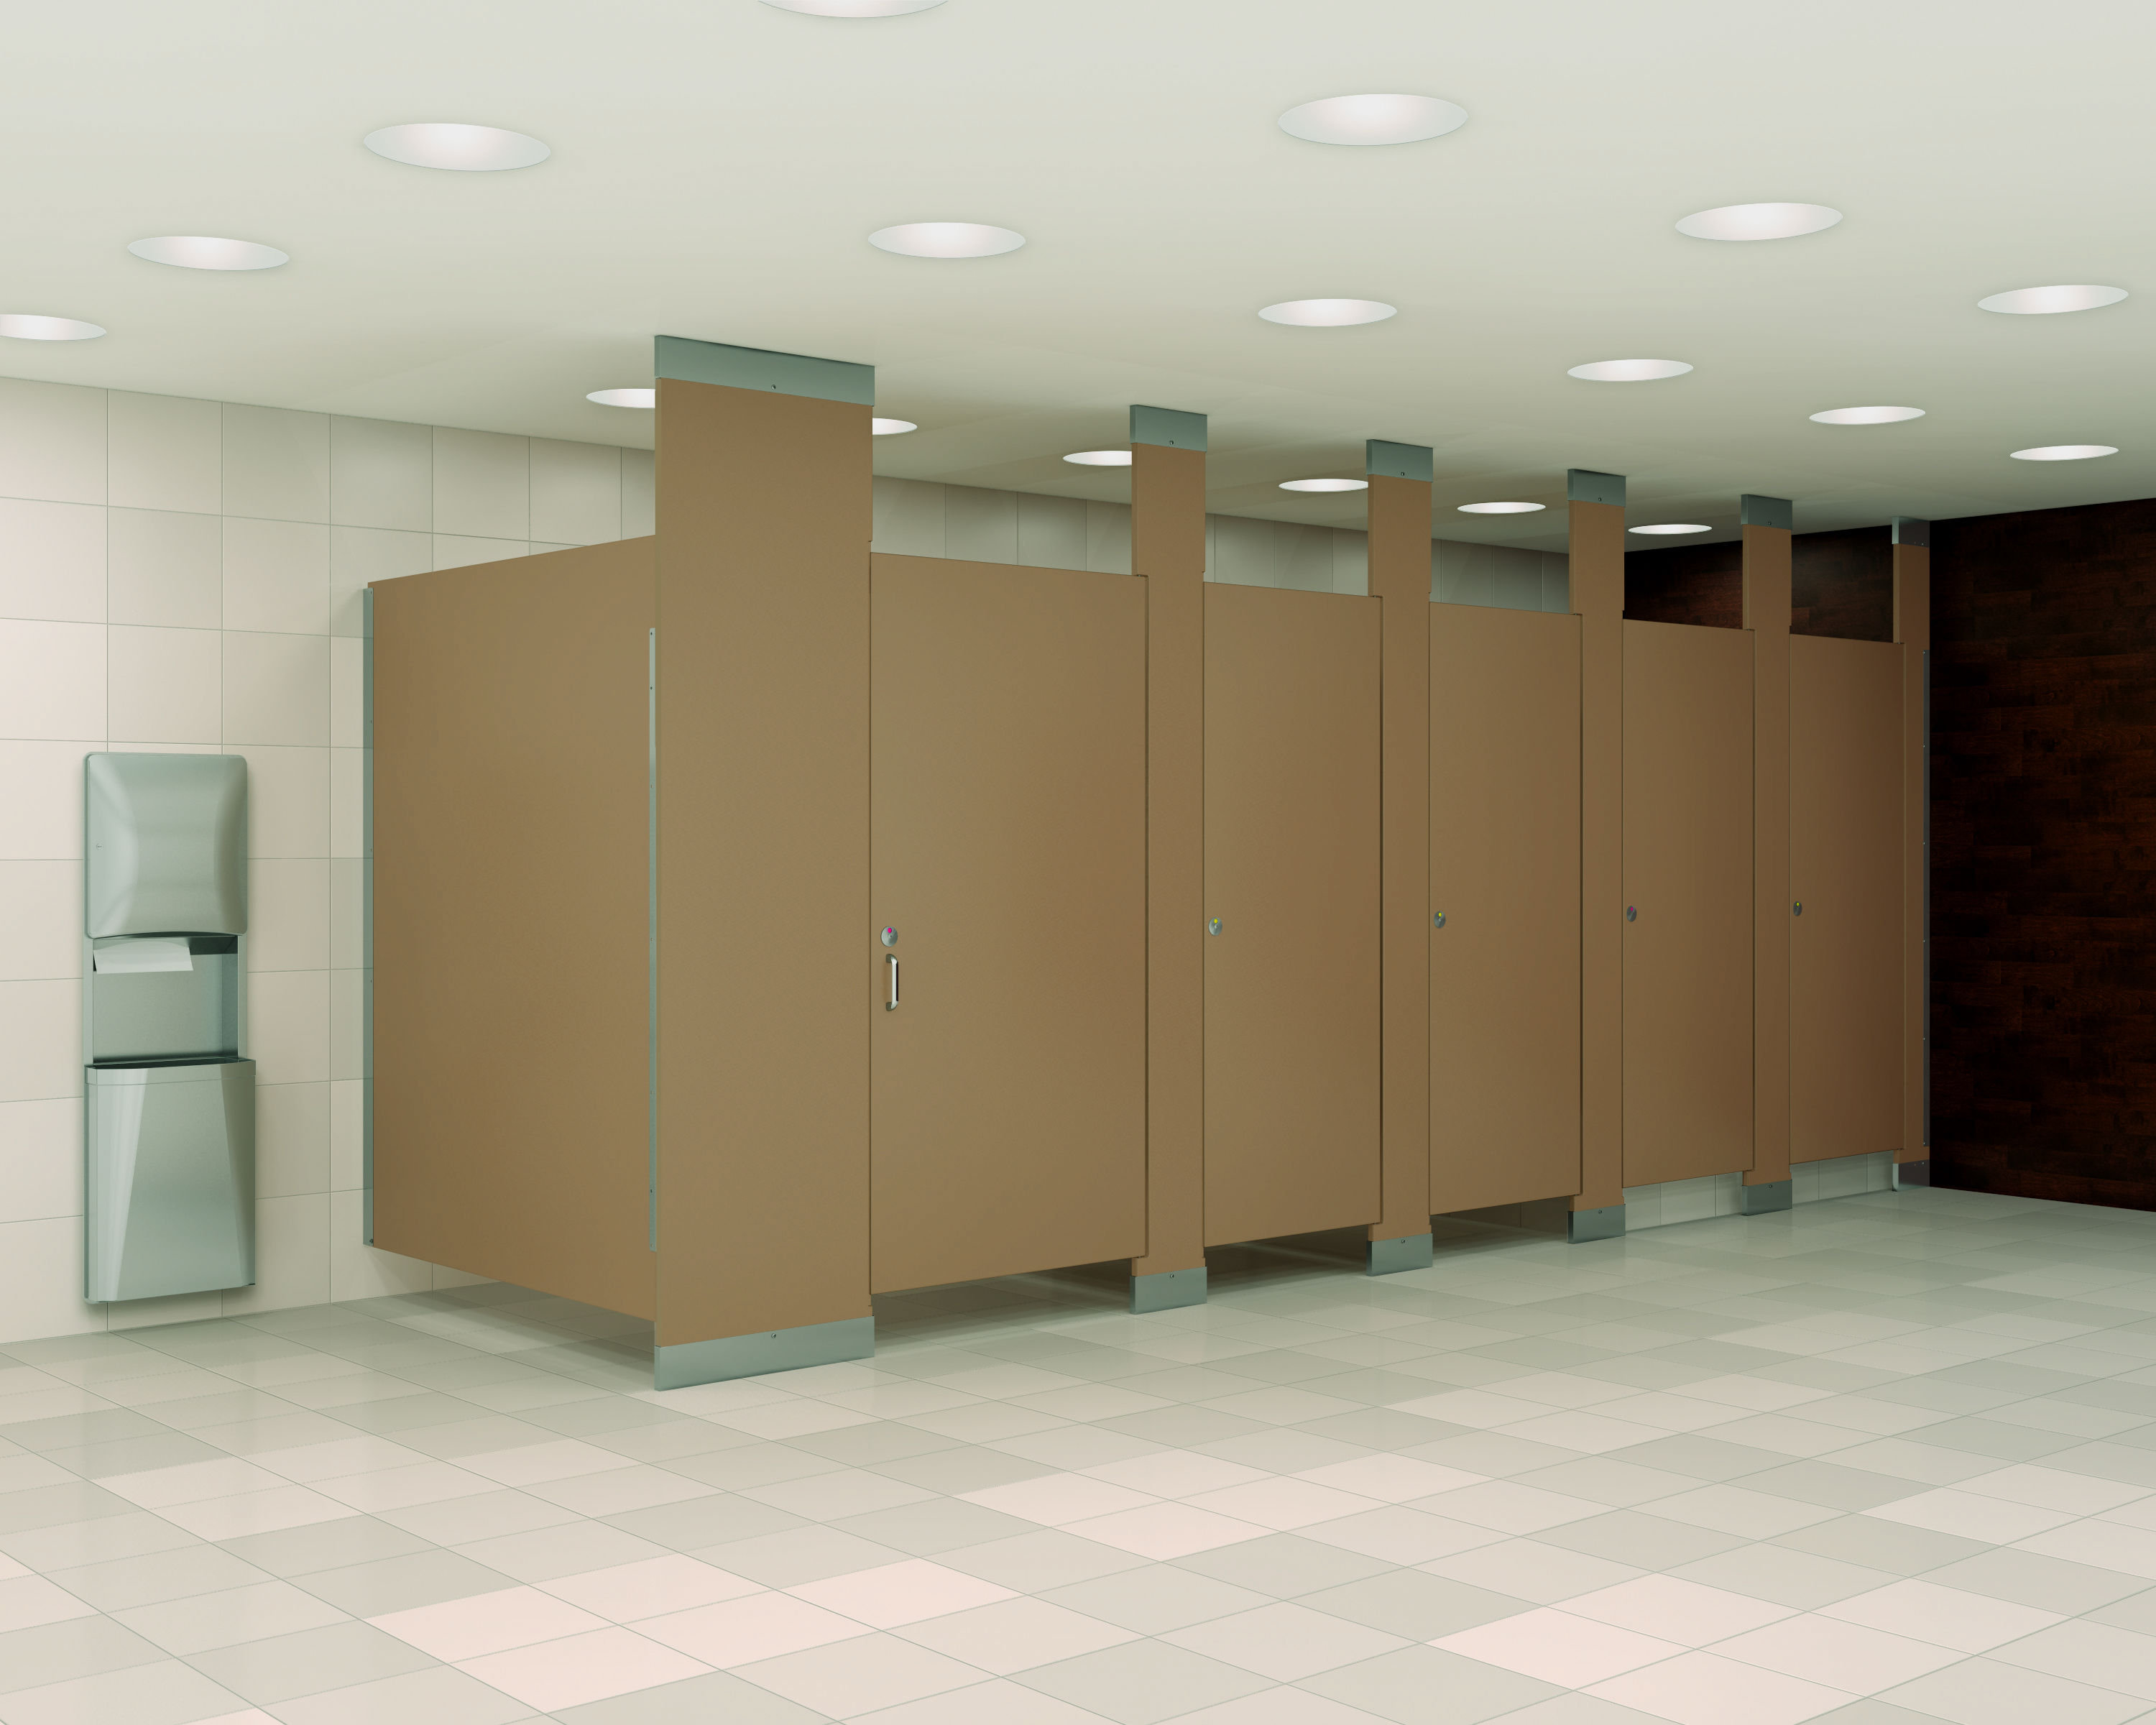 Powder Room Privacy Stalls Partitions Sales And Design - Public bathroom stall dividers